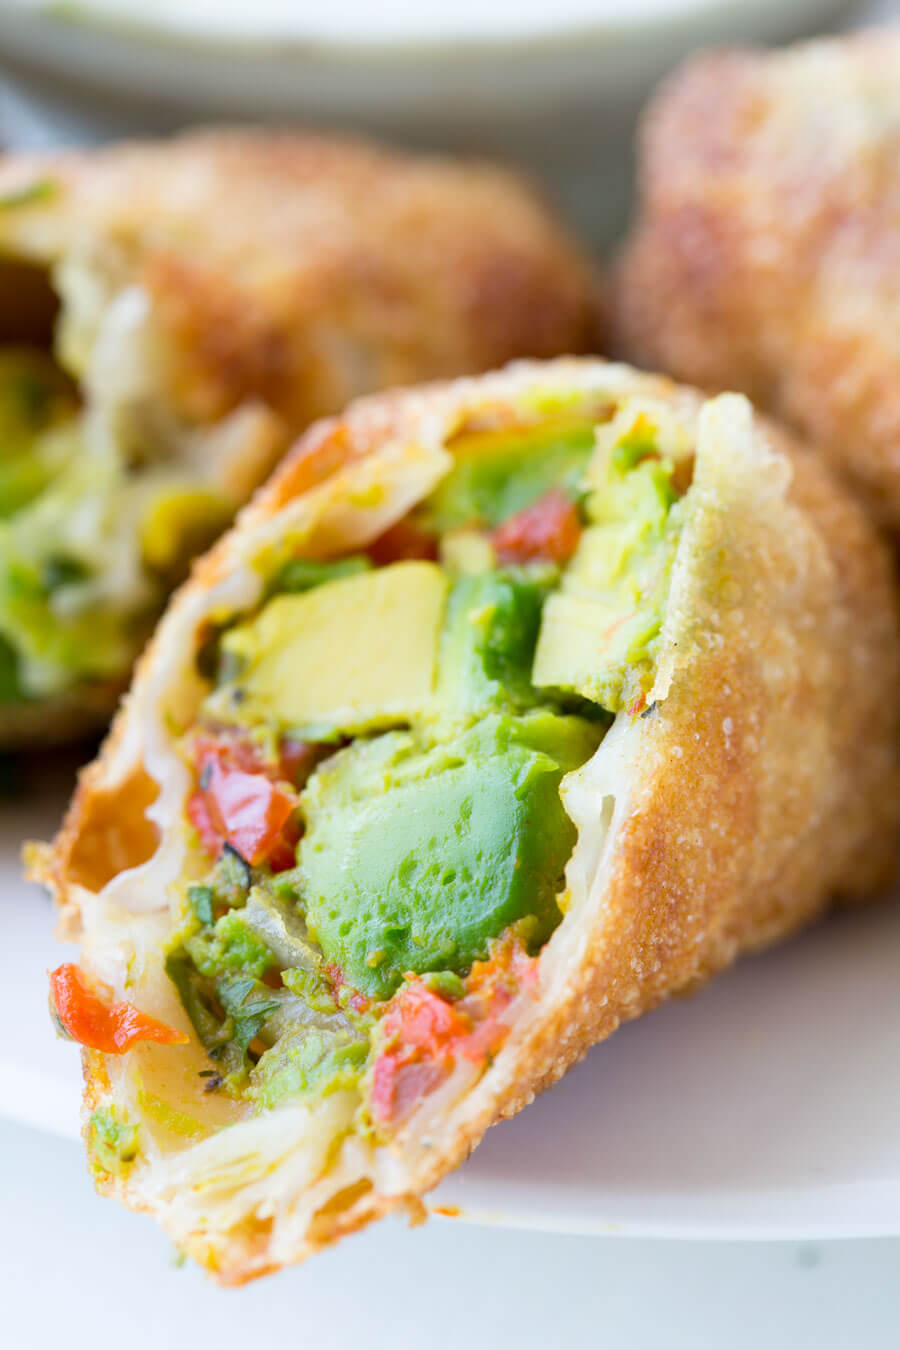 Avocado Egg Rolls: Crunchy egg roll wrapper filled with chunks of California Avocados, cilantro, tomatoes, red onion, and roasted red peppers; dipped ina creamy avocado ranch dipping sauce!